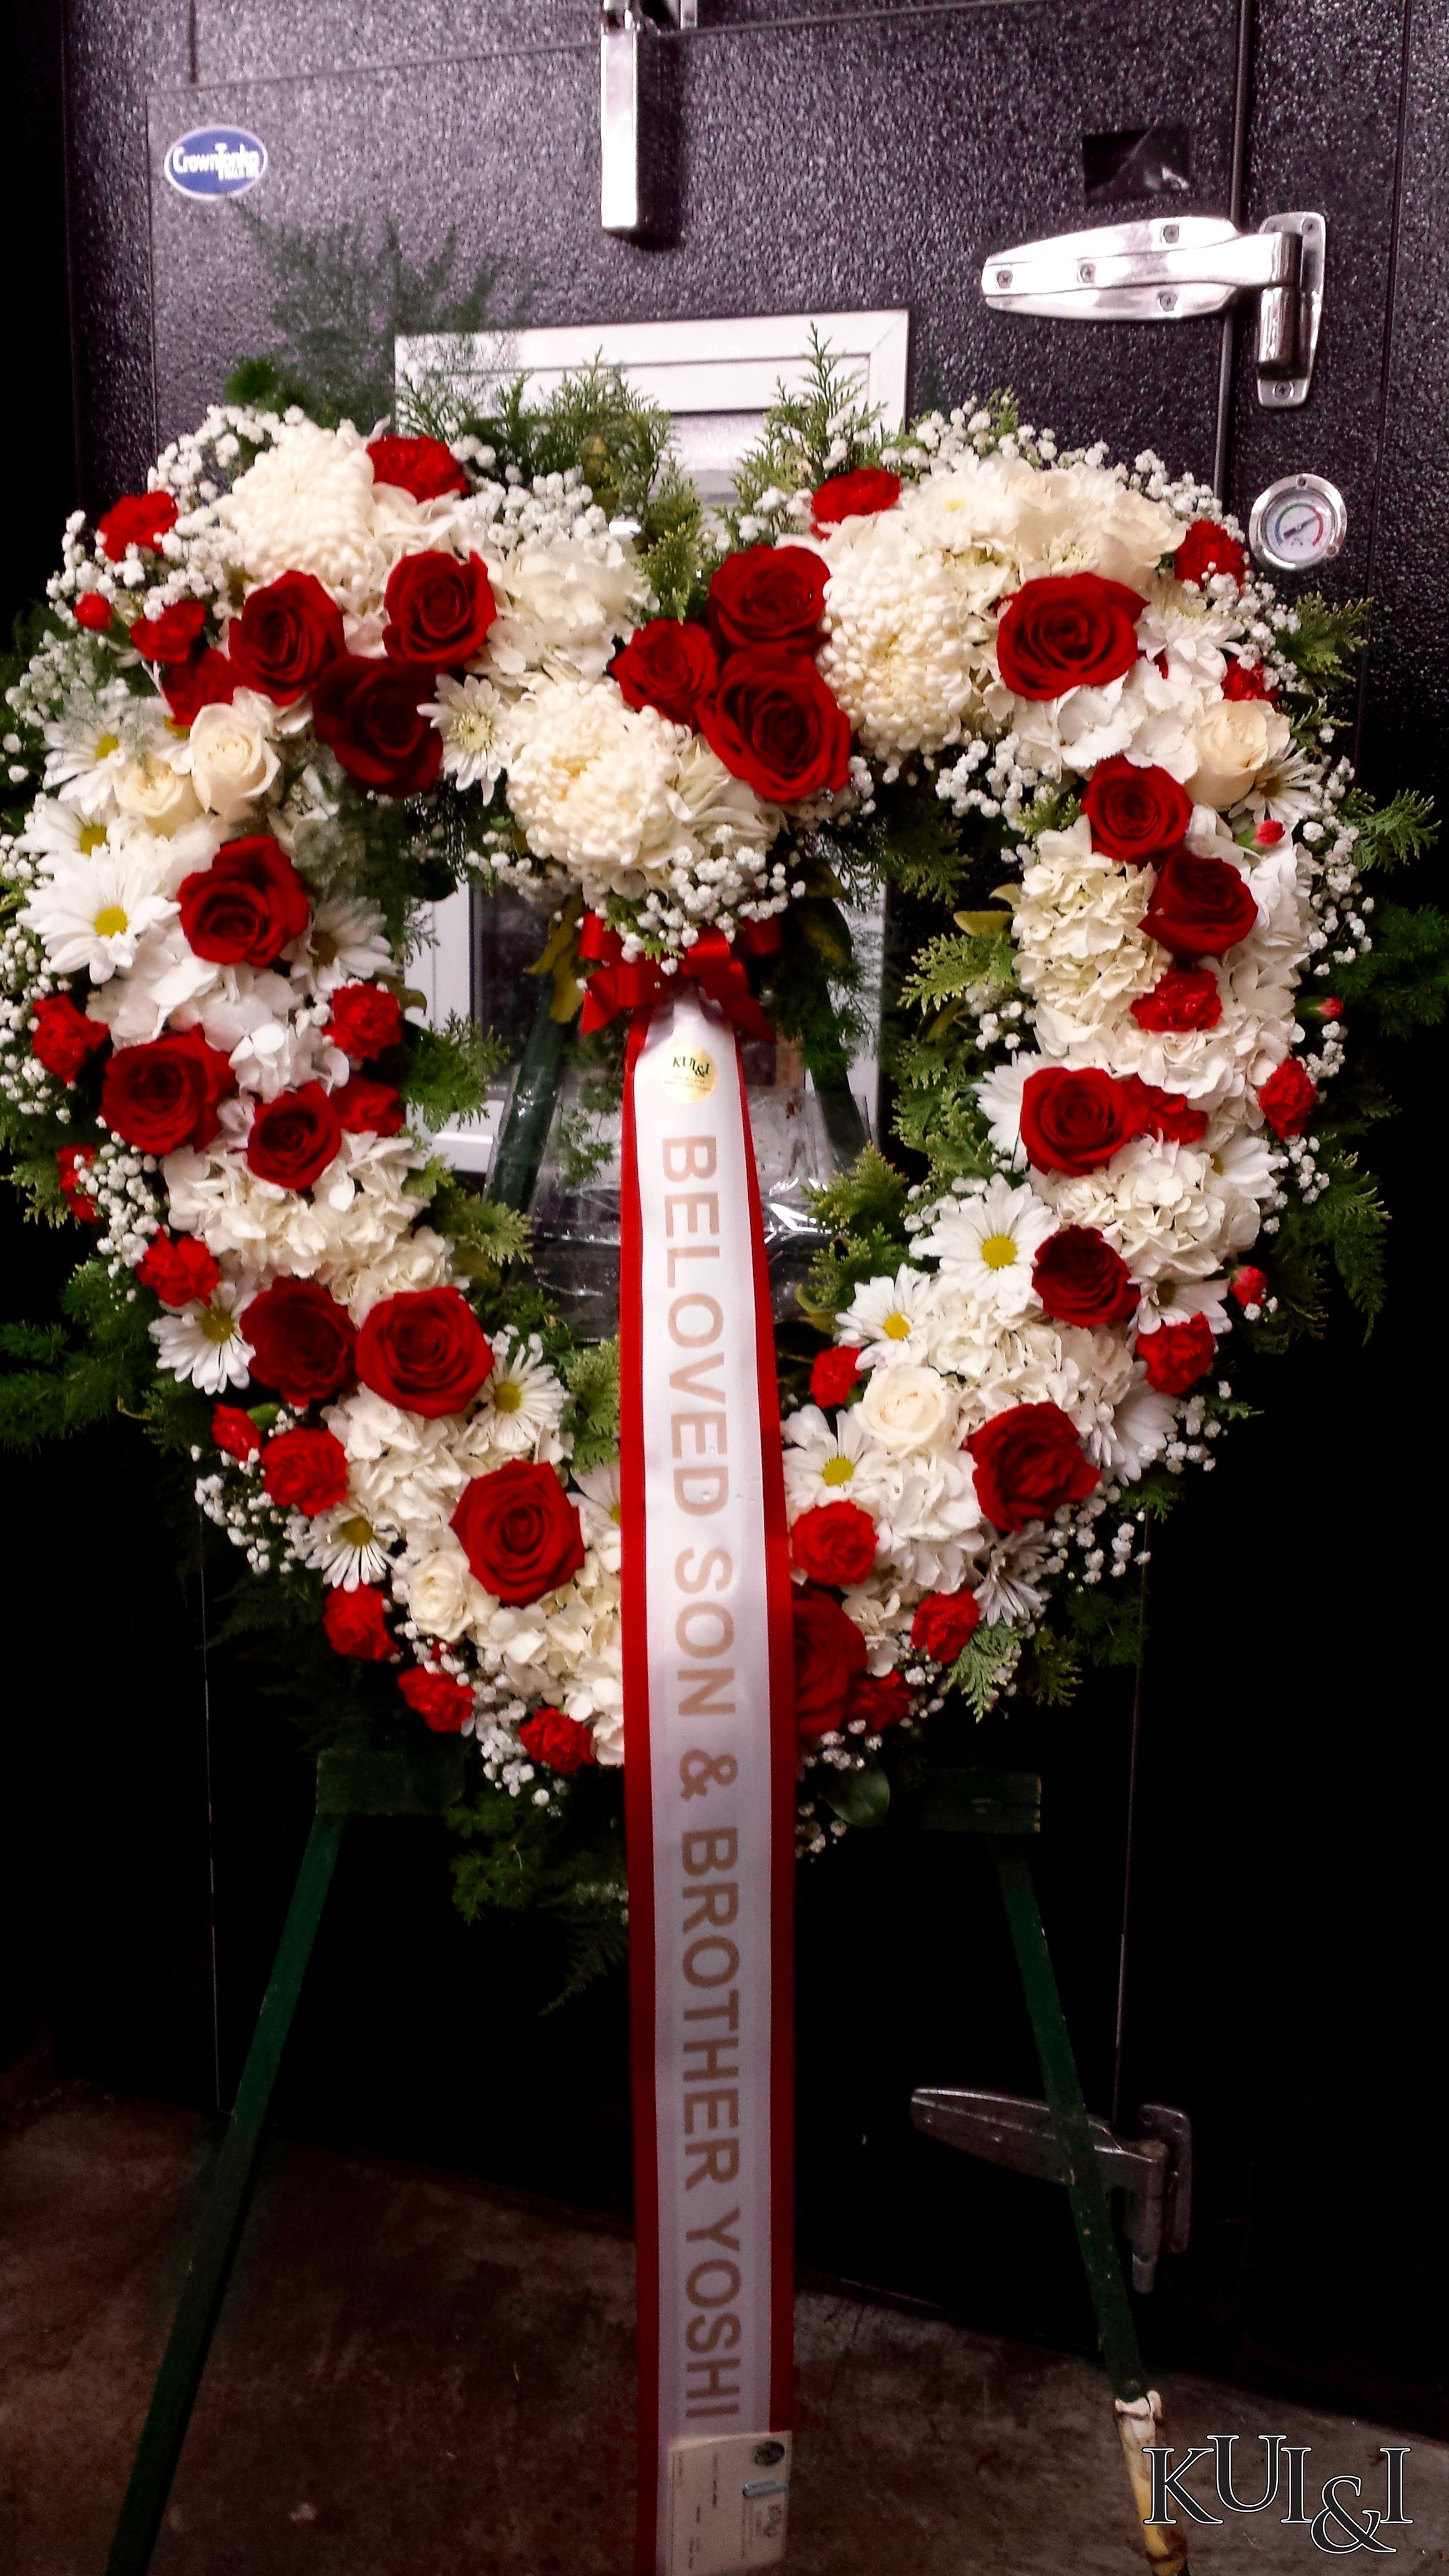 White and red heart funeral wreath kuiandiflorist kuiandi white and red heart funeral wreath kuiandiflorist kuiandi izmirmasajfo Image collections